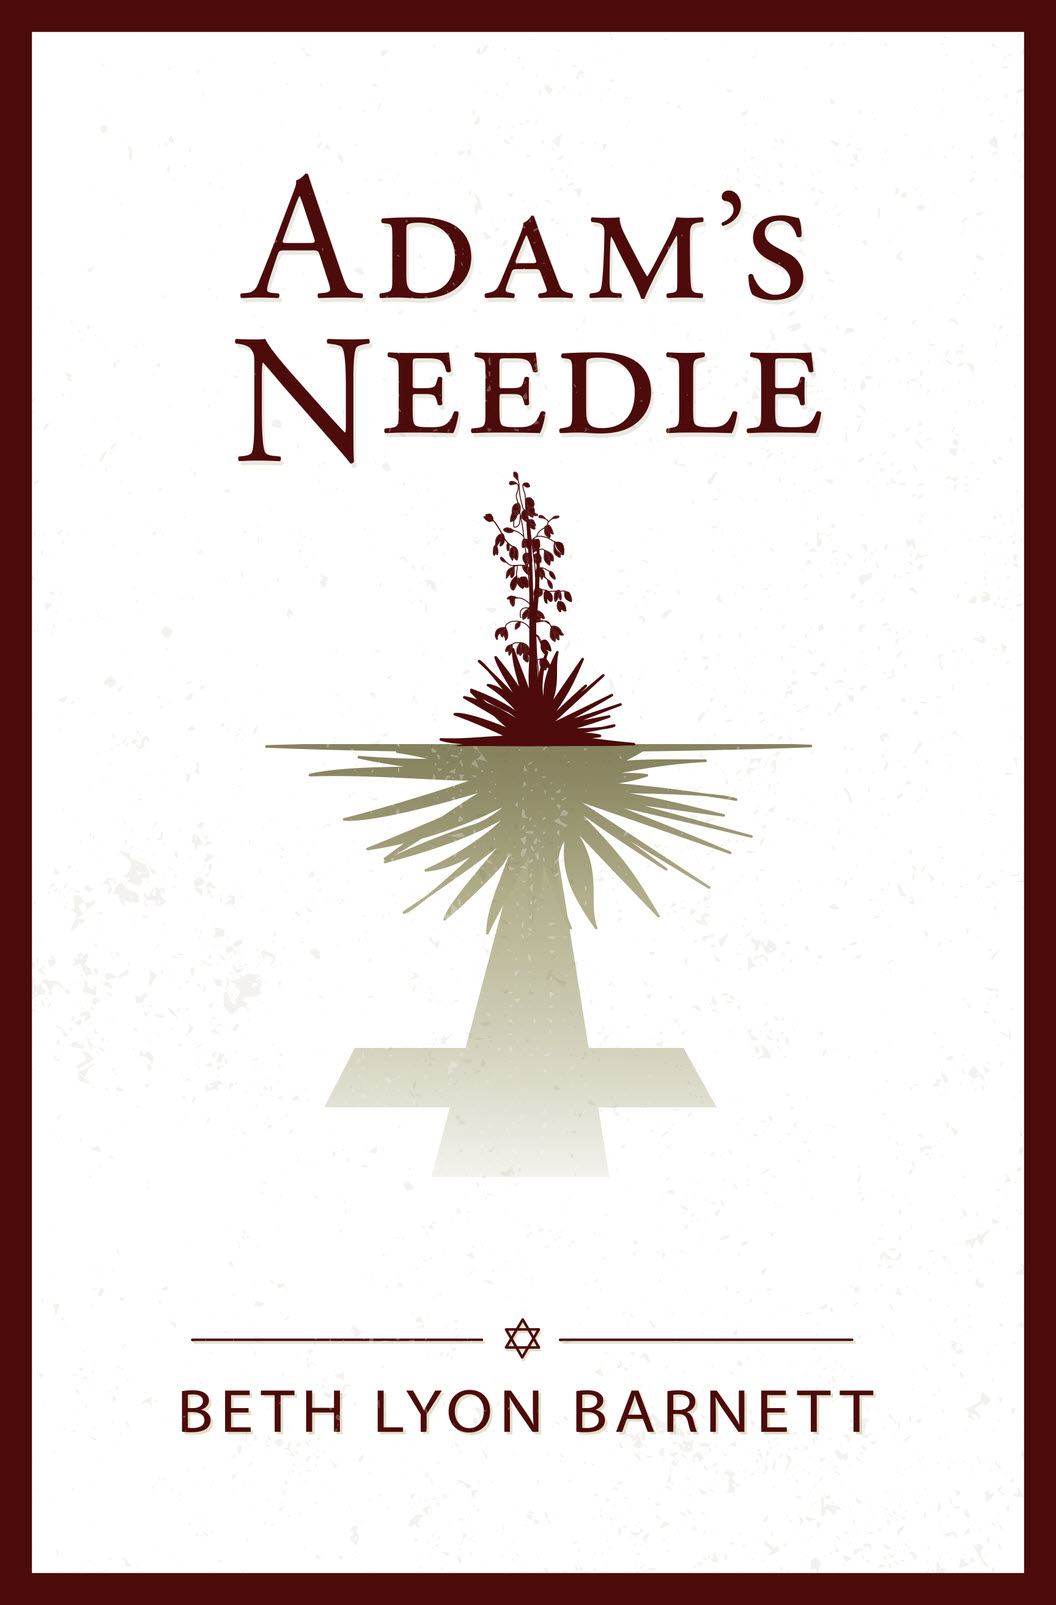 Adams-Needle-front-cover web 4-4-15.jpg